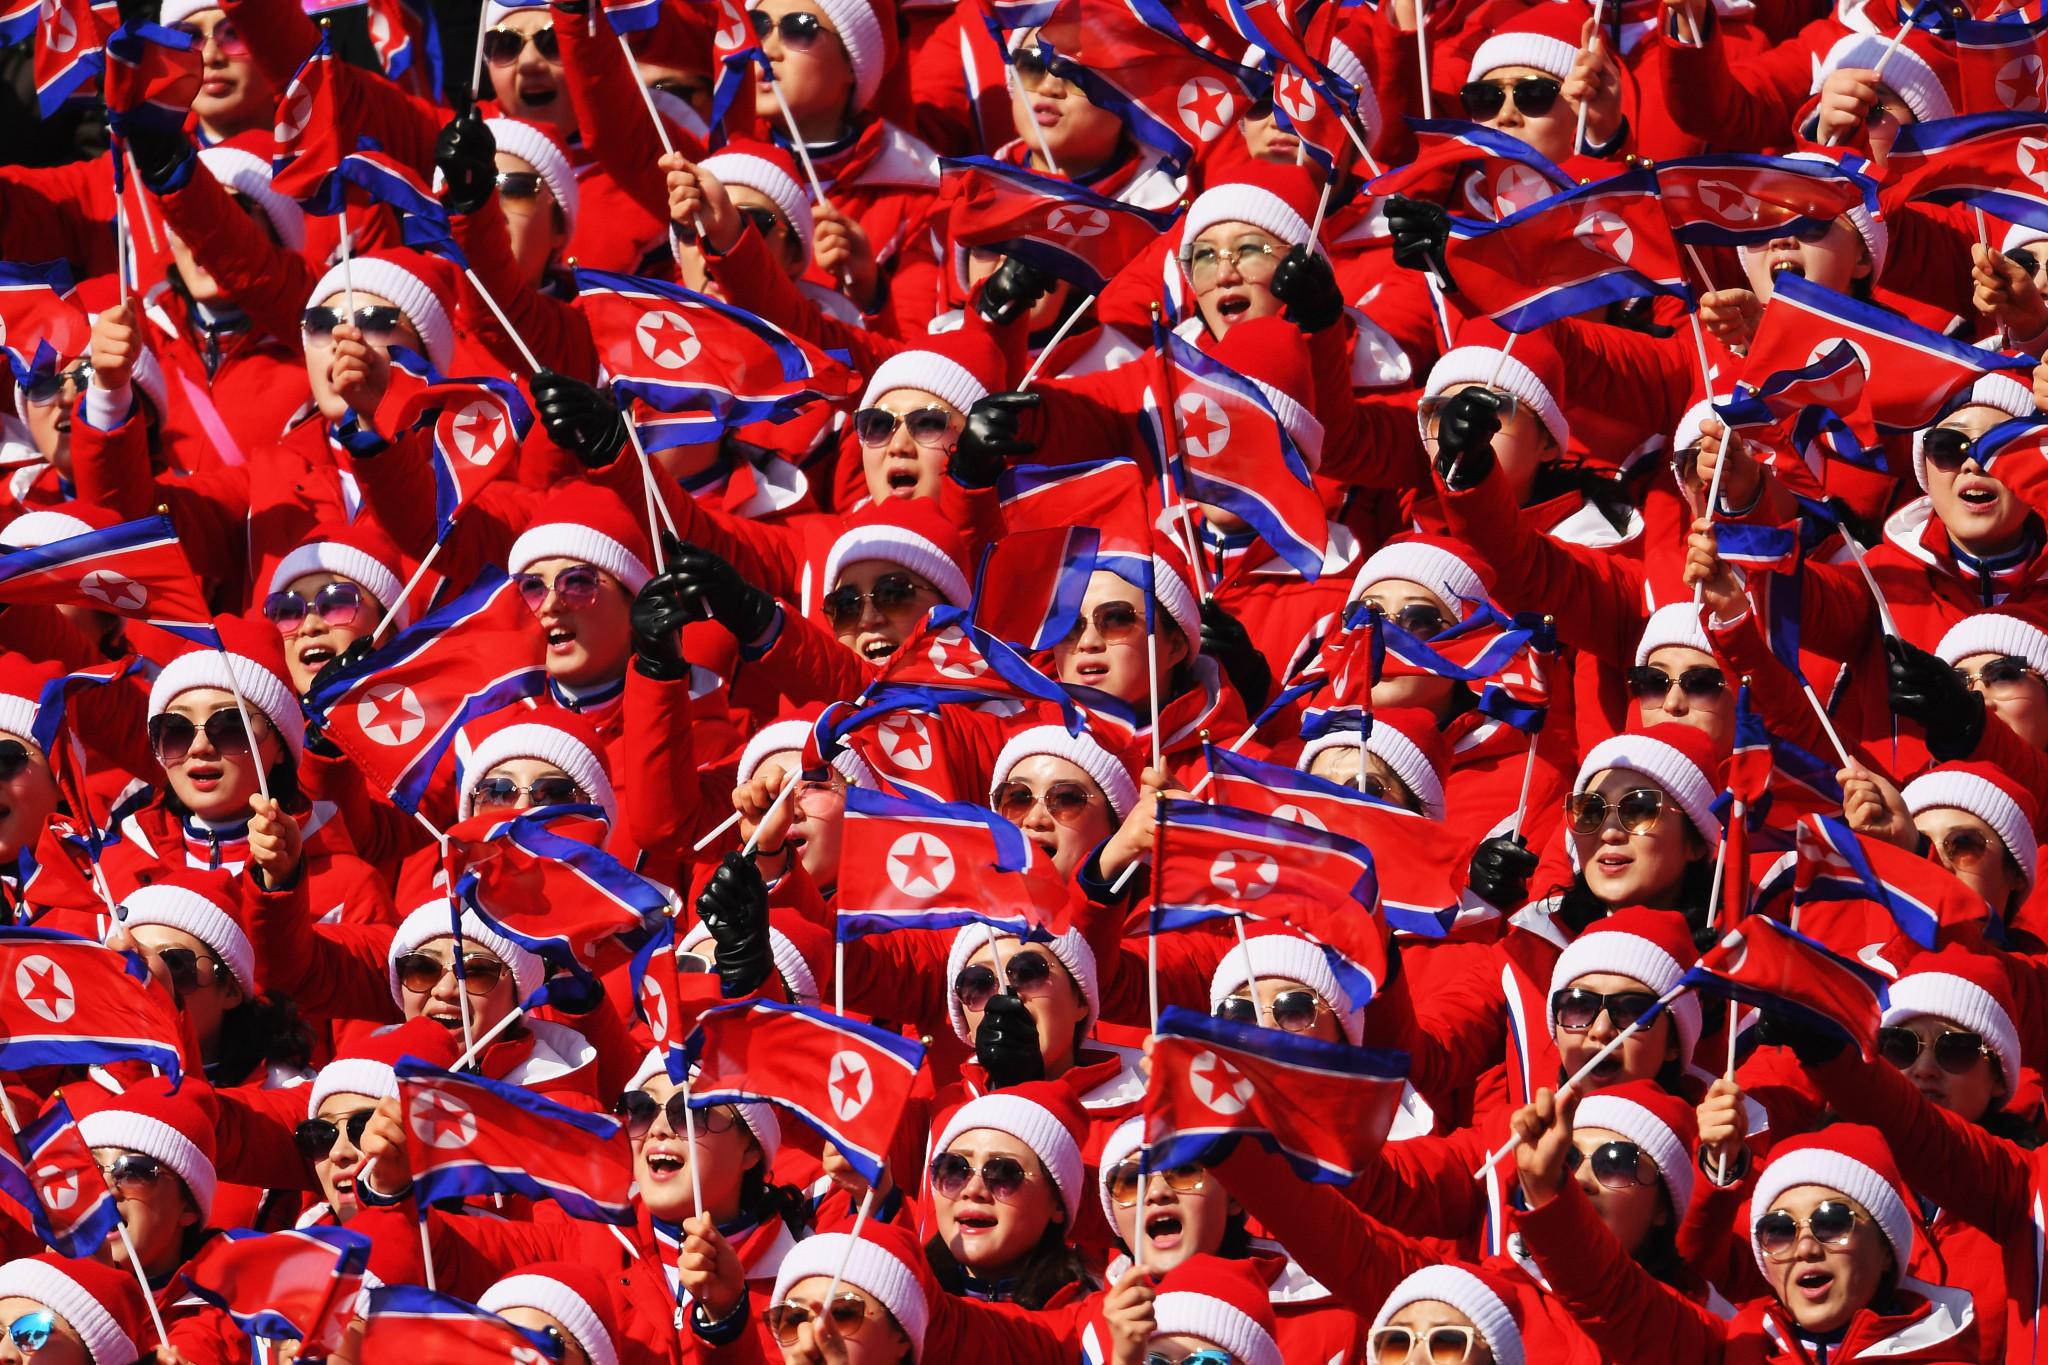 North Korea's choreographed fans will be absent from Tokyo 2020, along with the nation's athletes ©Getty Images